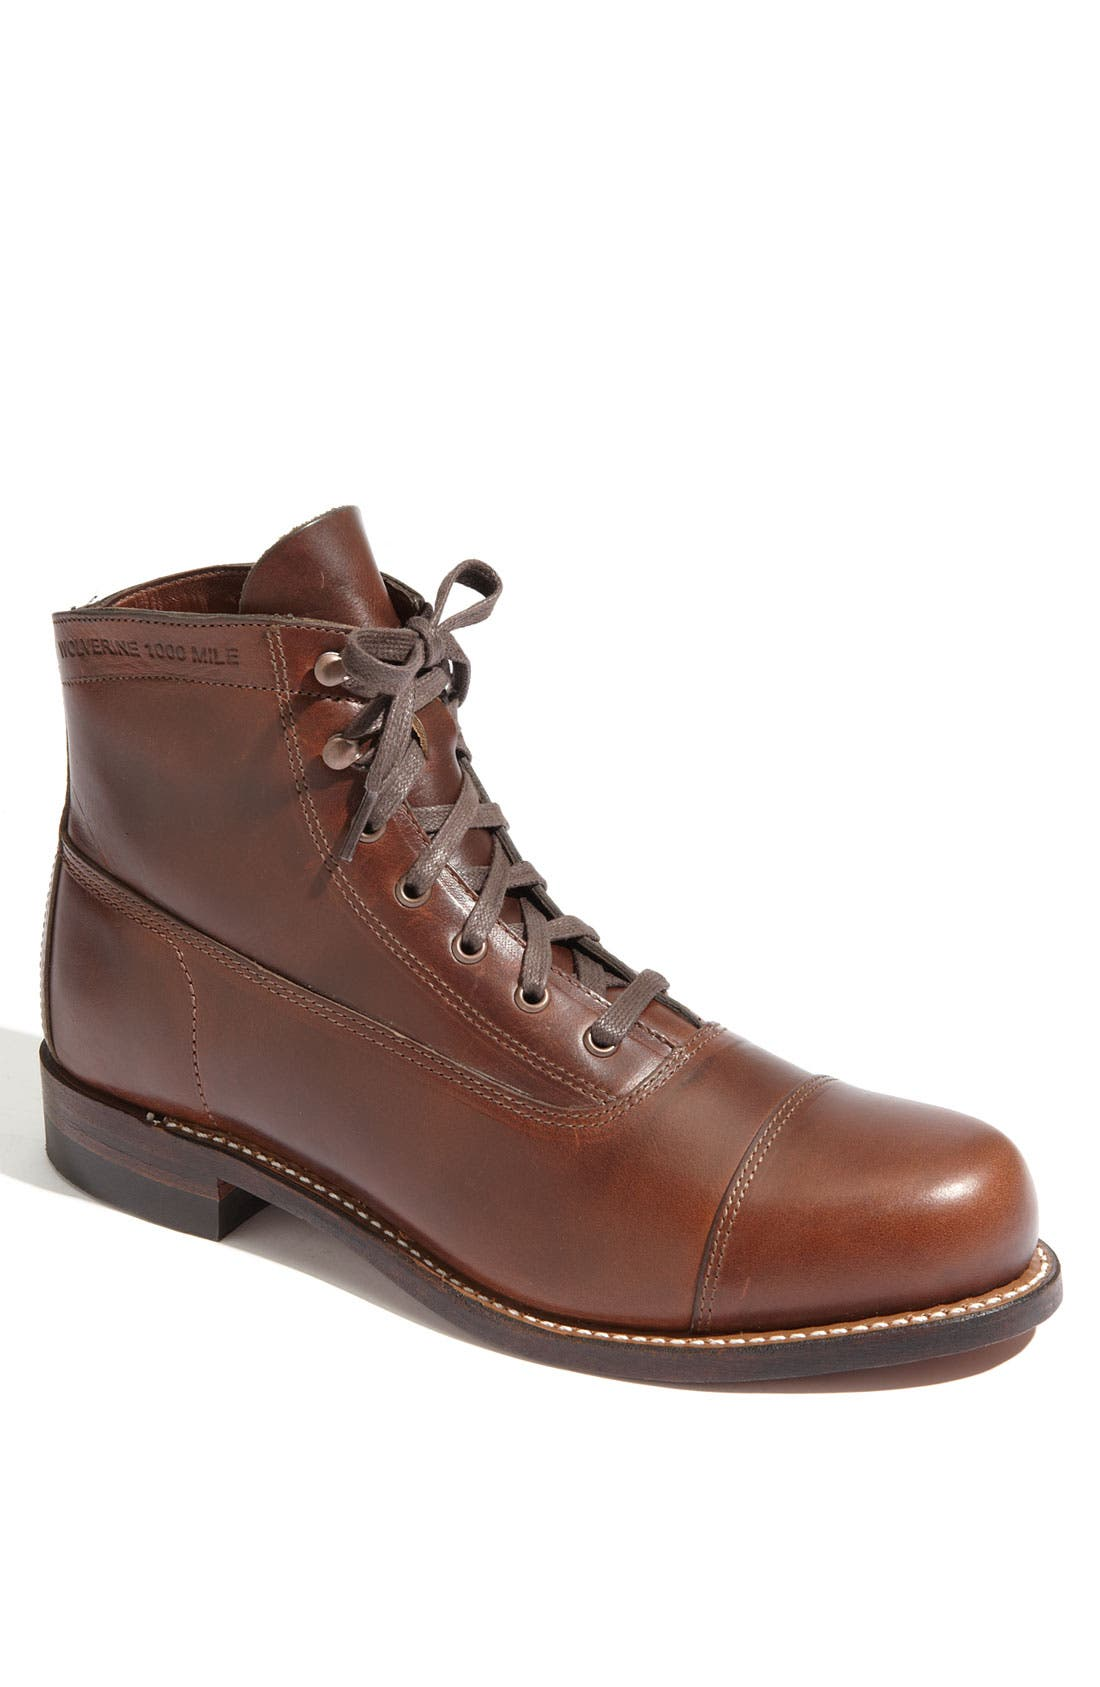 Main Image - Wolverine '1000 Mile - Rockford' Boot